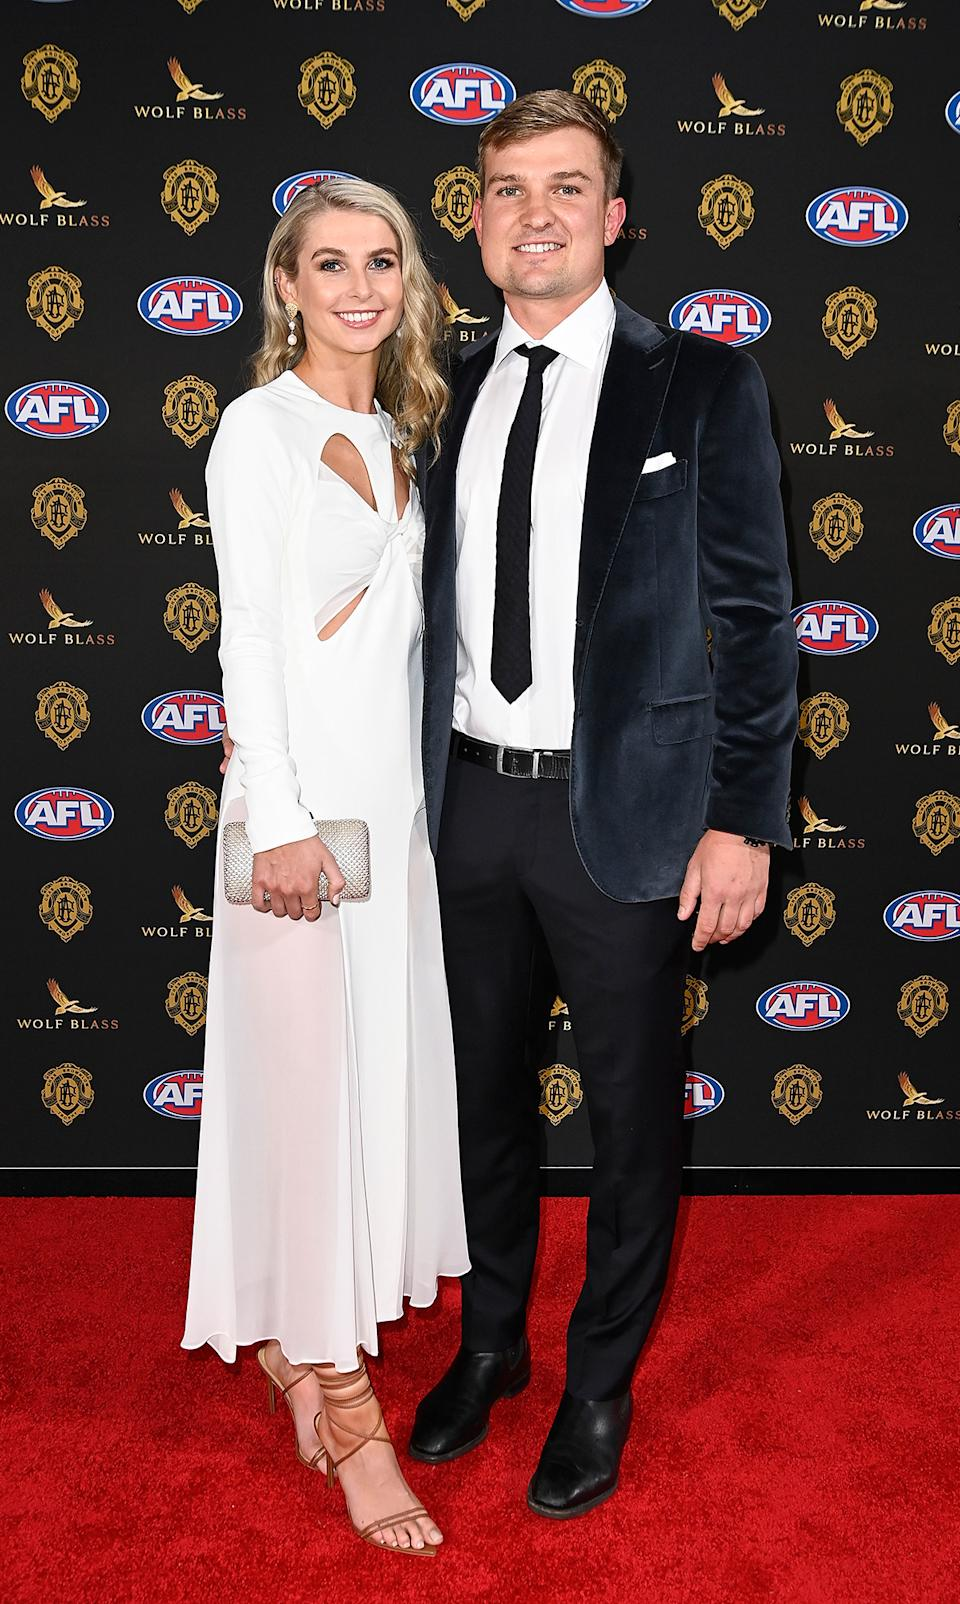 Ollie Wines and Olivia May at the 2021 Brownlow Red Carpet